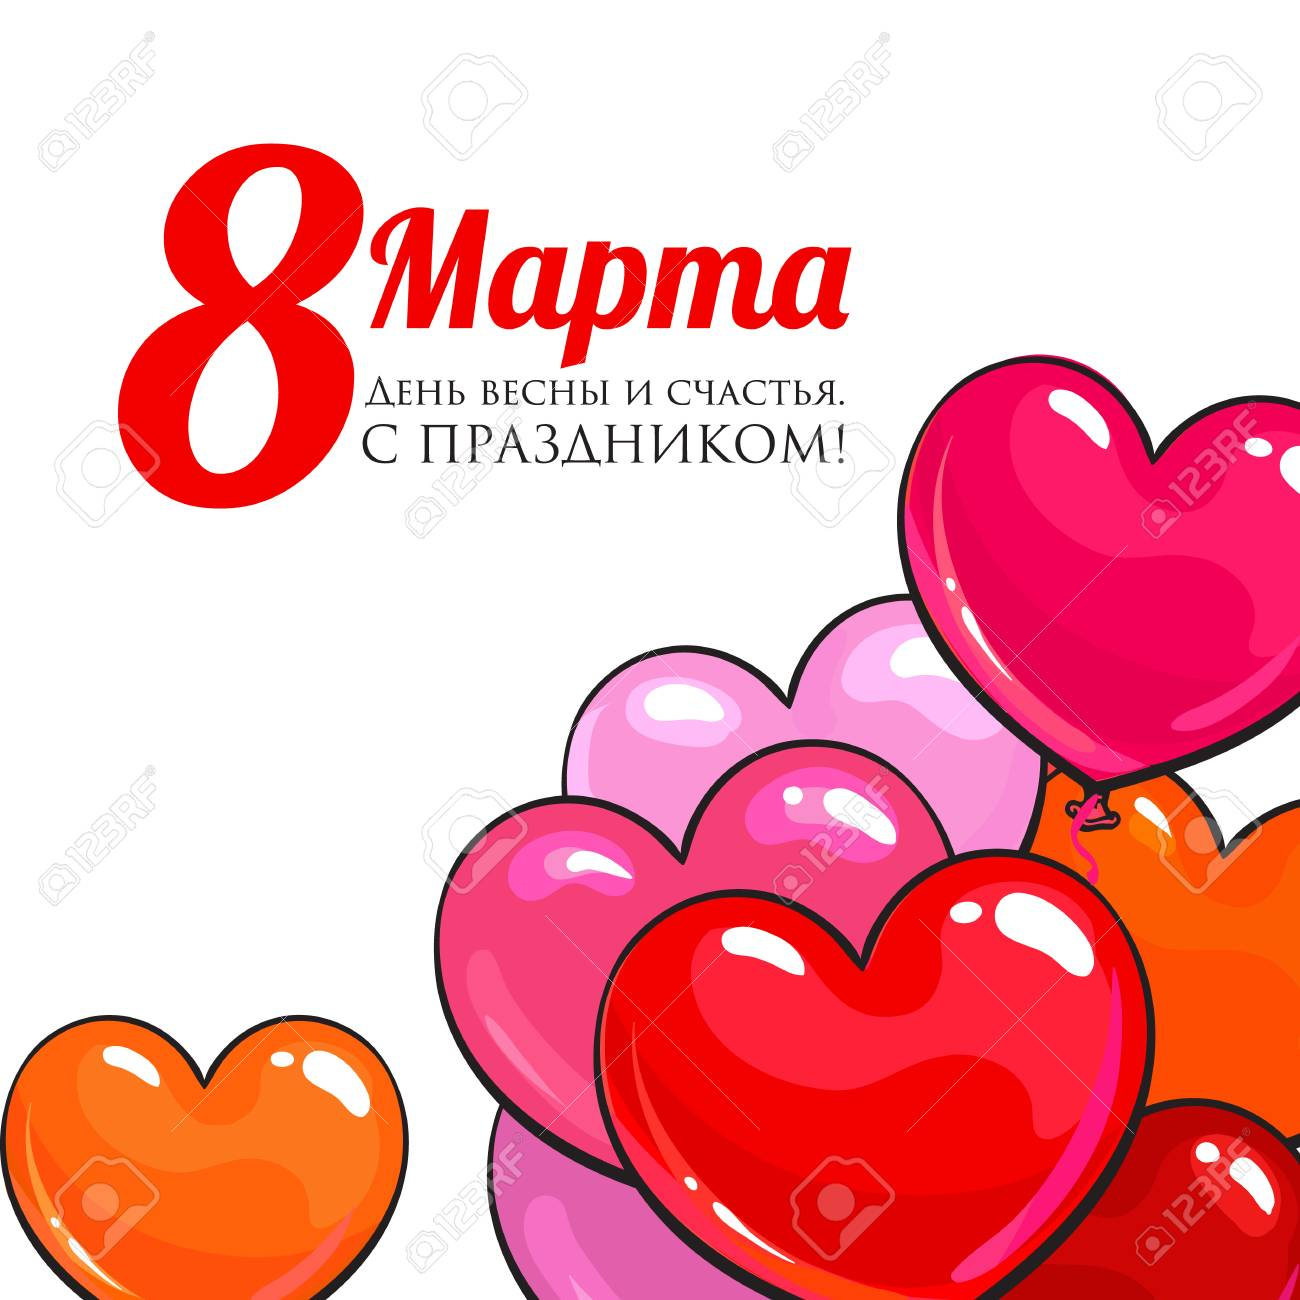 Happy womens day 8 march greeting card in russian language happy womens day 8 march greeting card in russian language banner design with red kristyandbryce Gallery